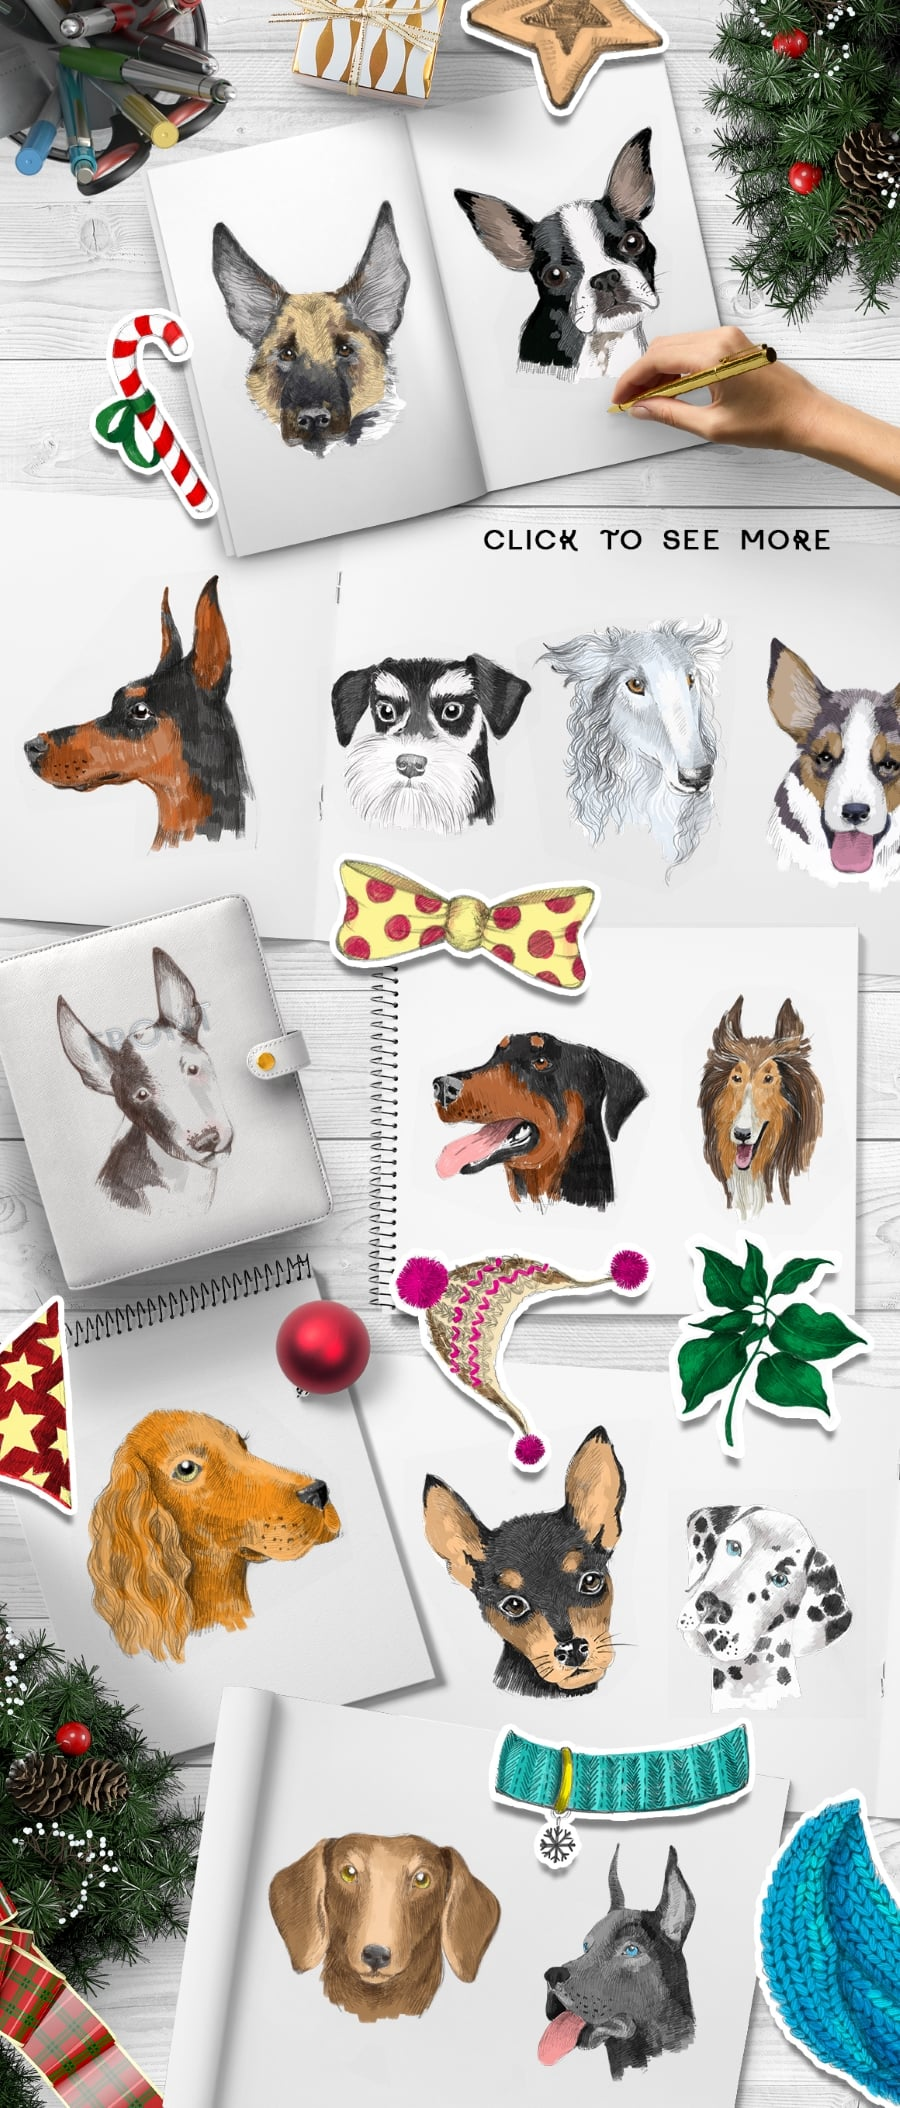 New Year Bundle: 15 Different Dog Breeds and Elements - prev4 2